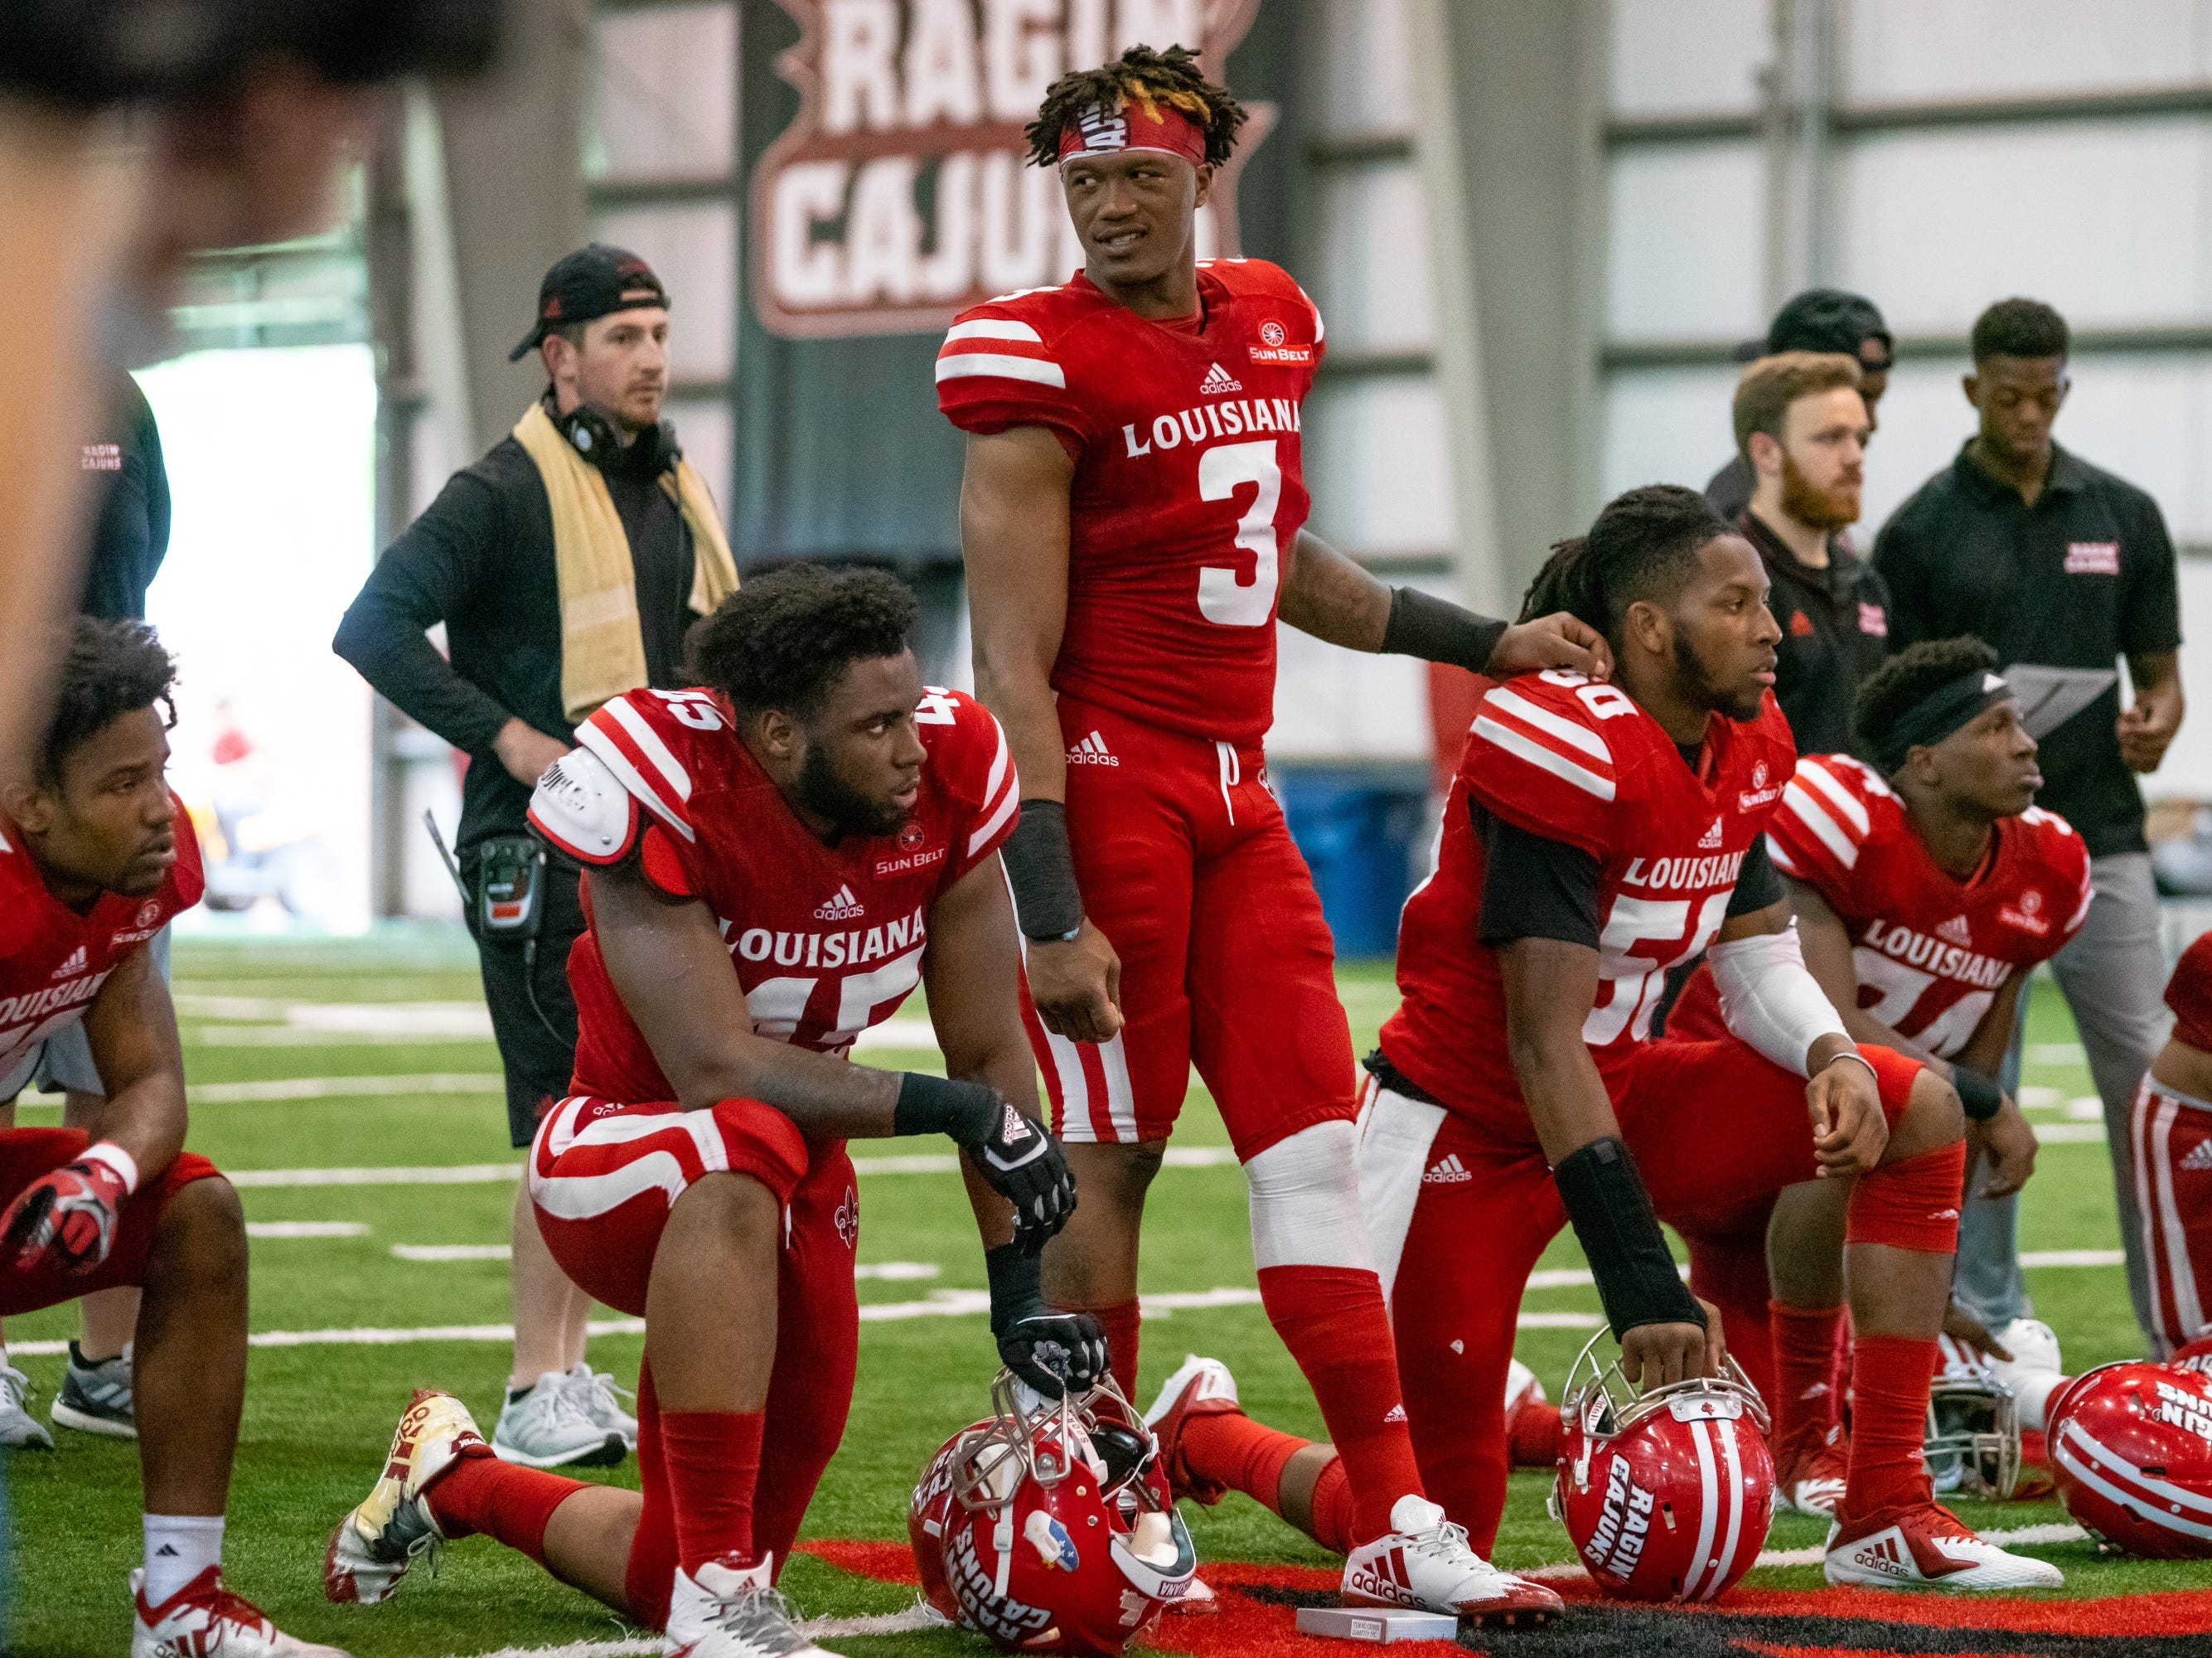 UL's Joe Dillon during halftime as the Ragin' Cajuns football team plays their annual Spring football game against one another in the Leon Moncla trainig facility on April 13, 2019.